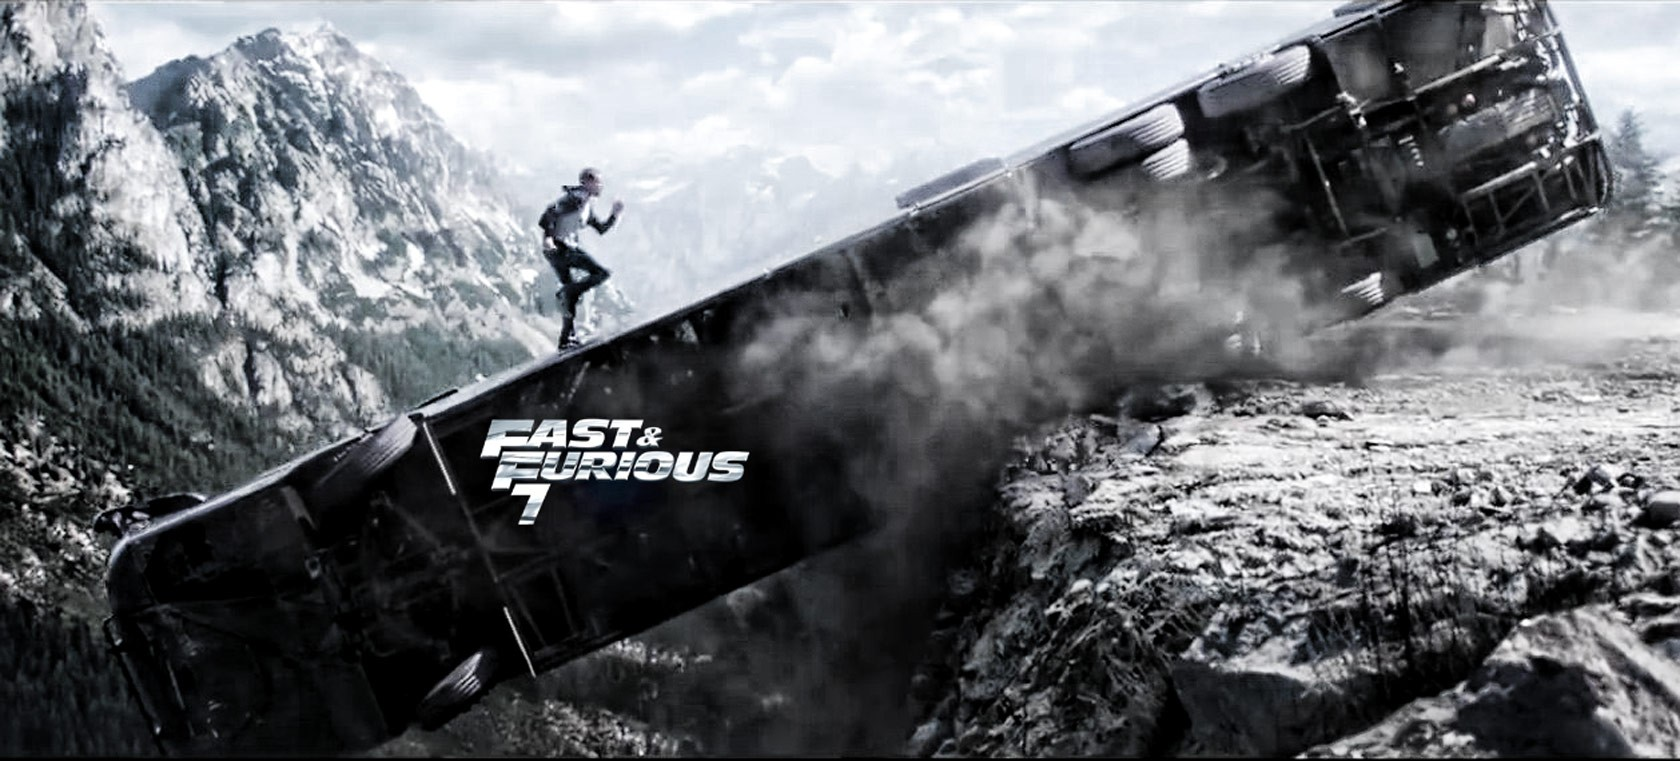 fast and furious images fast and furious 7 hd wallpaper and